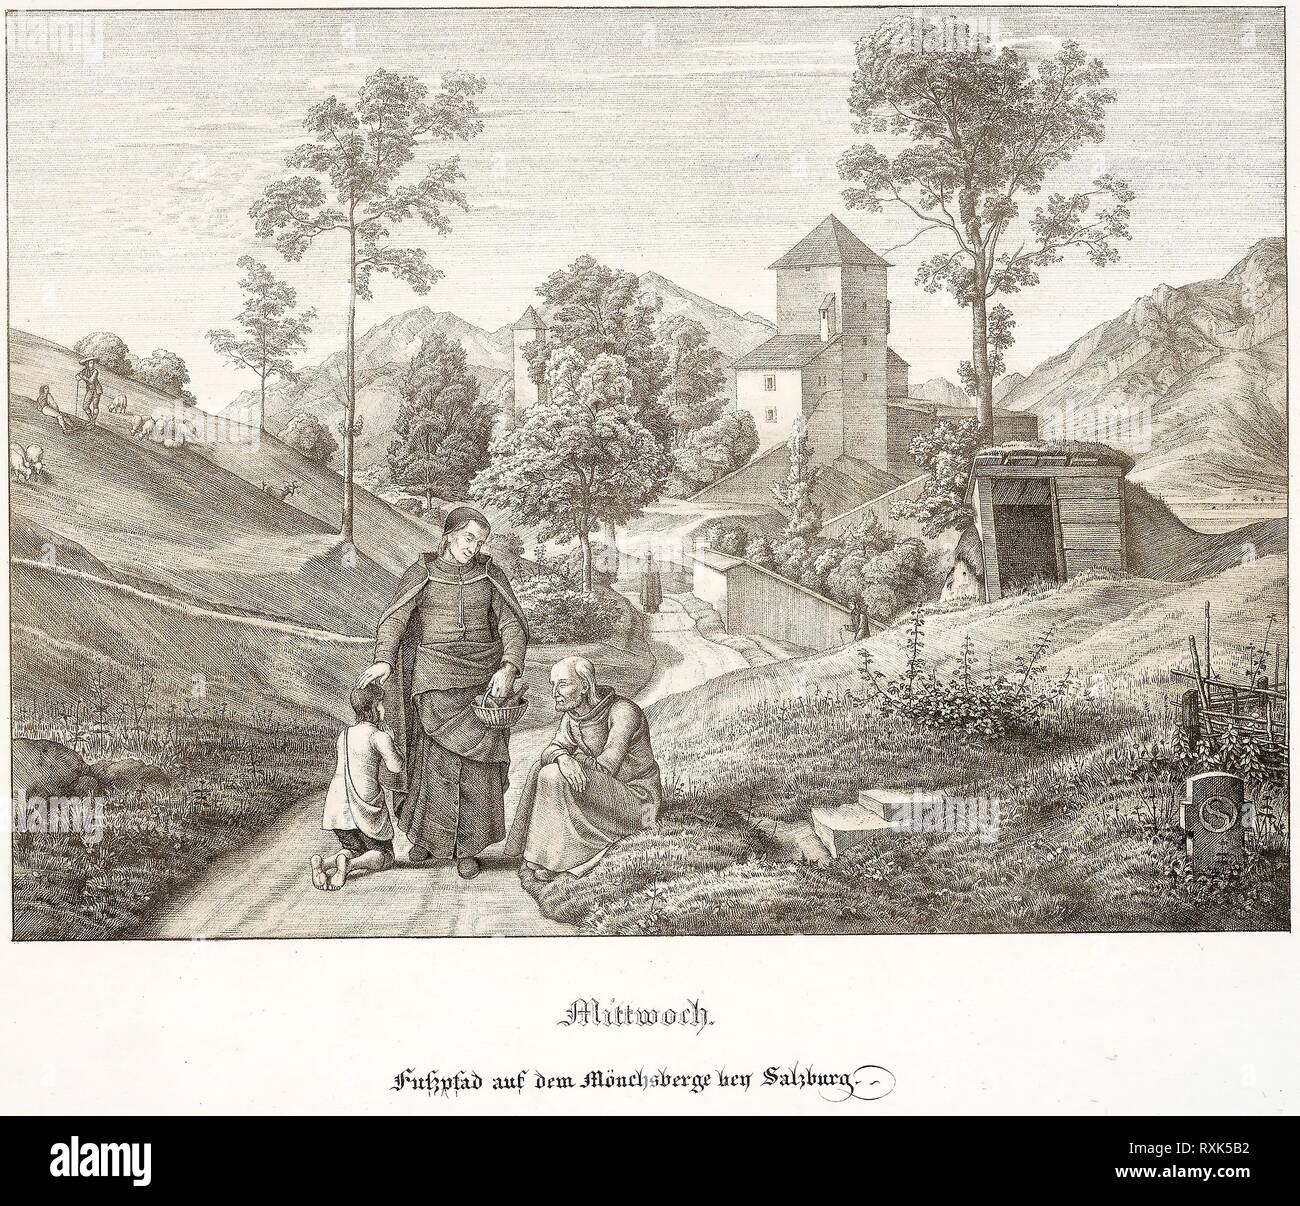 Wednesday: Footpath on the Mönchsberg Near Salzburg. Ferdinand Olivier; German, 1785-1841. Date: 1823. Dimensions: 200 x 275 mm (image); 370 x 529 mm (sheet). Lithograph with tint-stone on white wove paper. Origin: Germany. Museum: The Chicago Art Institute. Stock Photo